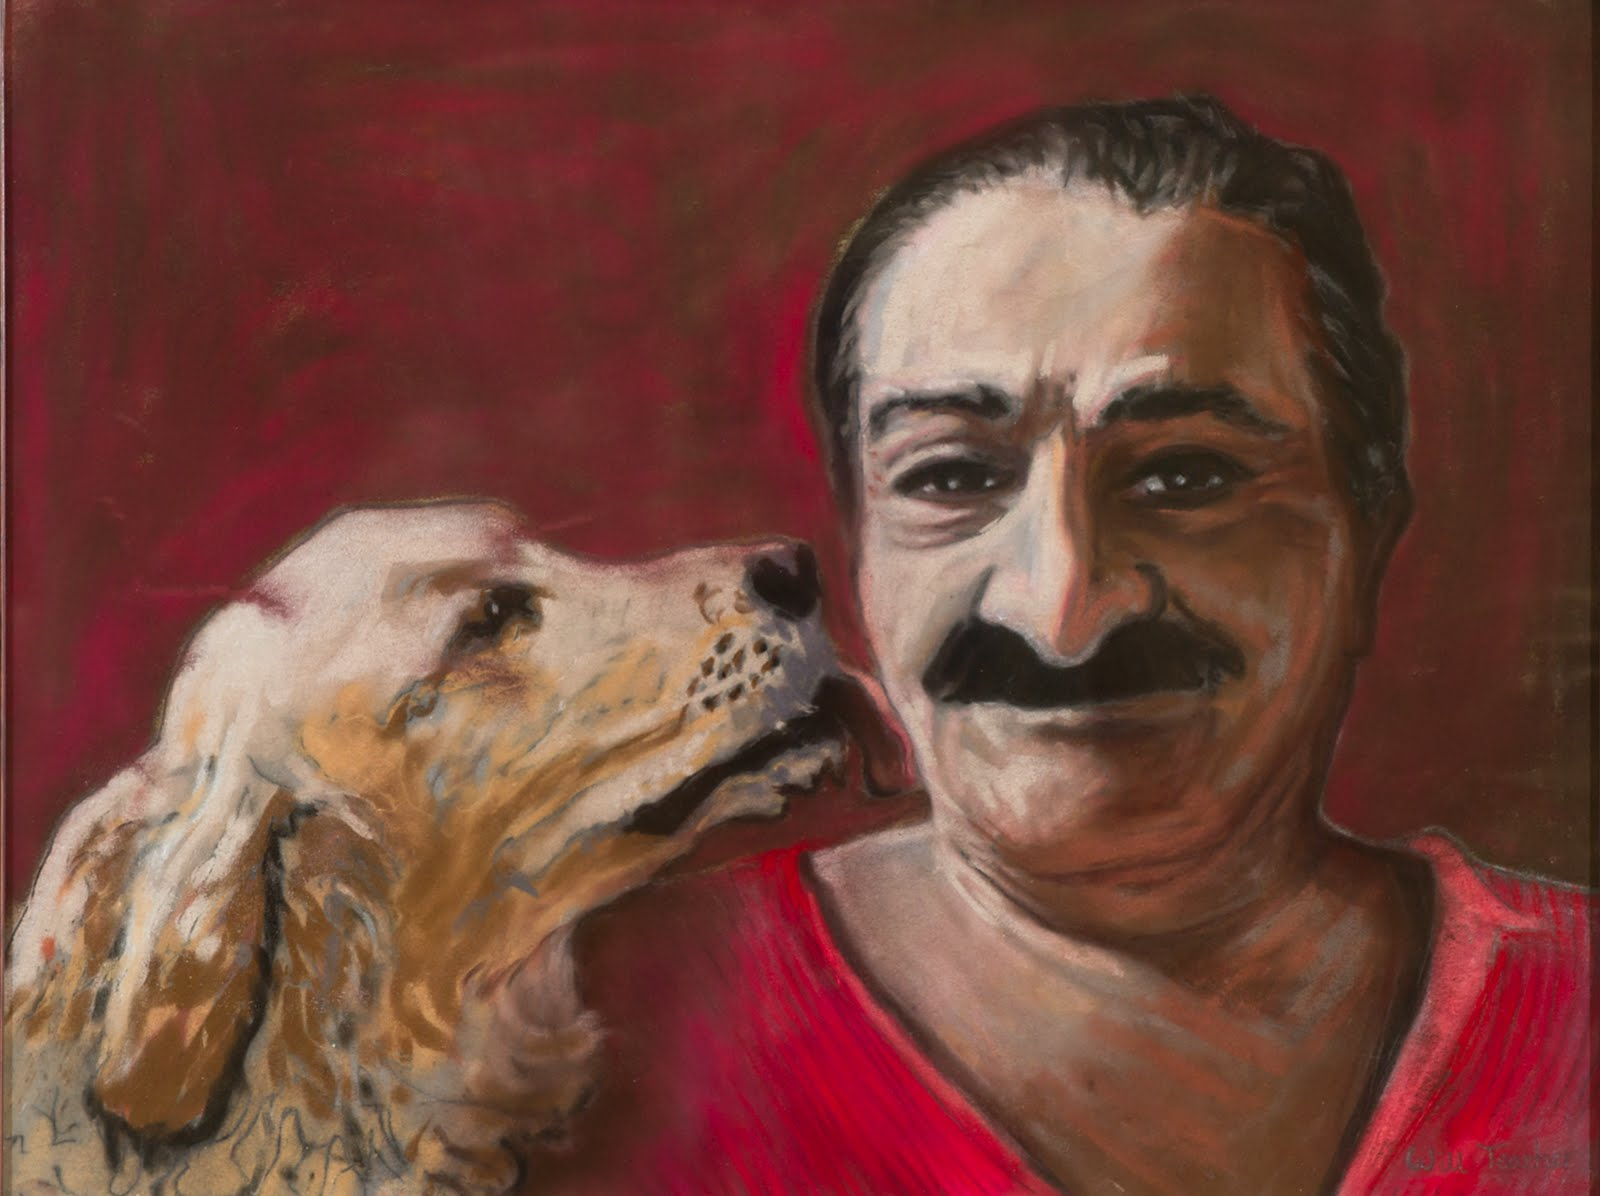 guru meher with dog licking face